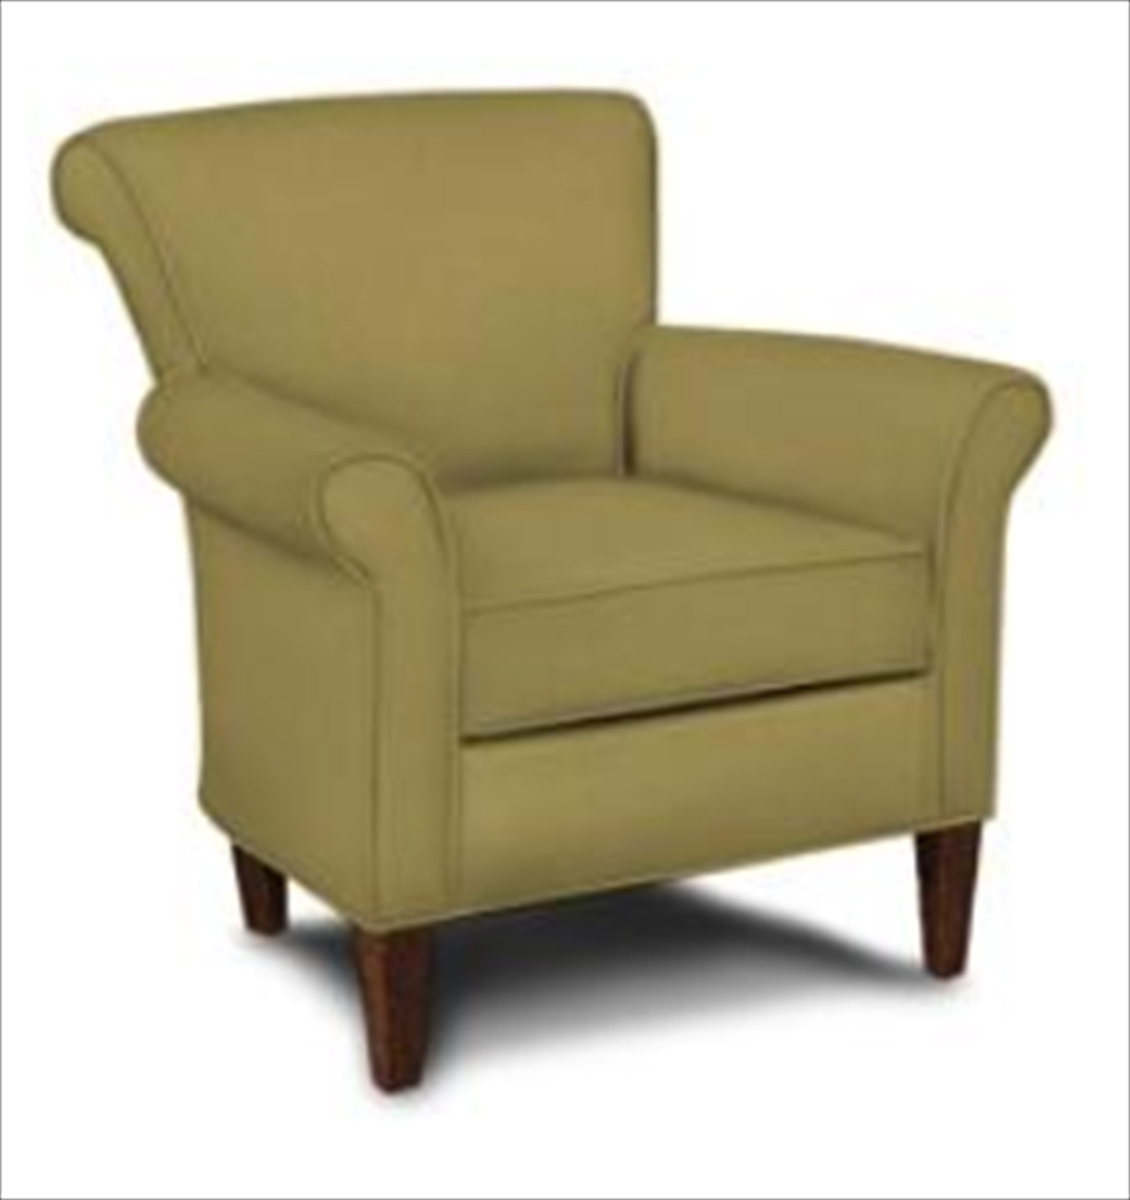 Klaussner Louise Chair - Willow Lotus